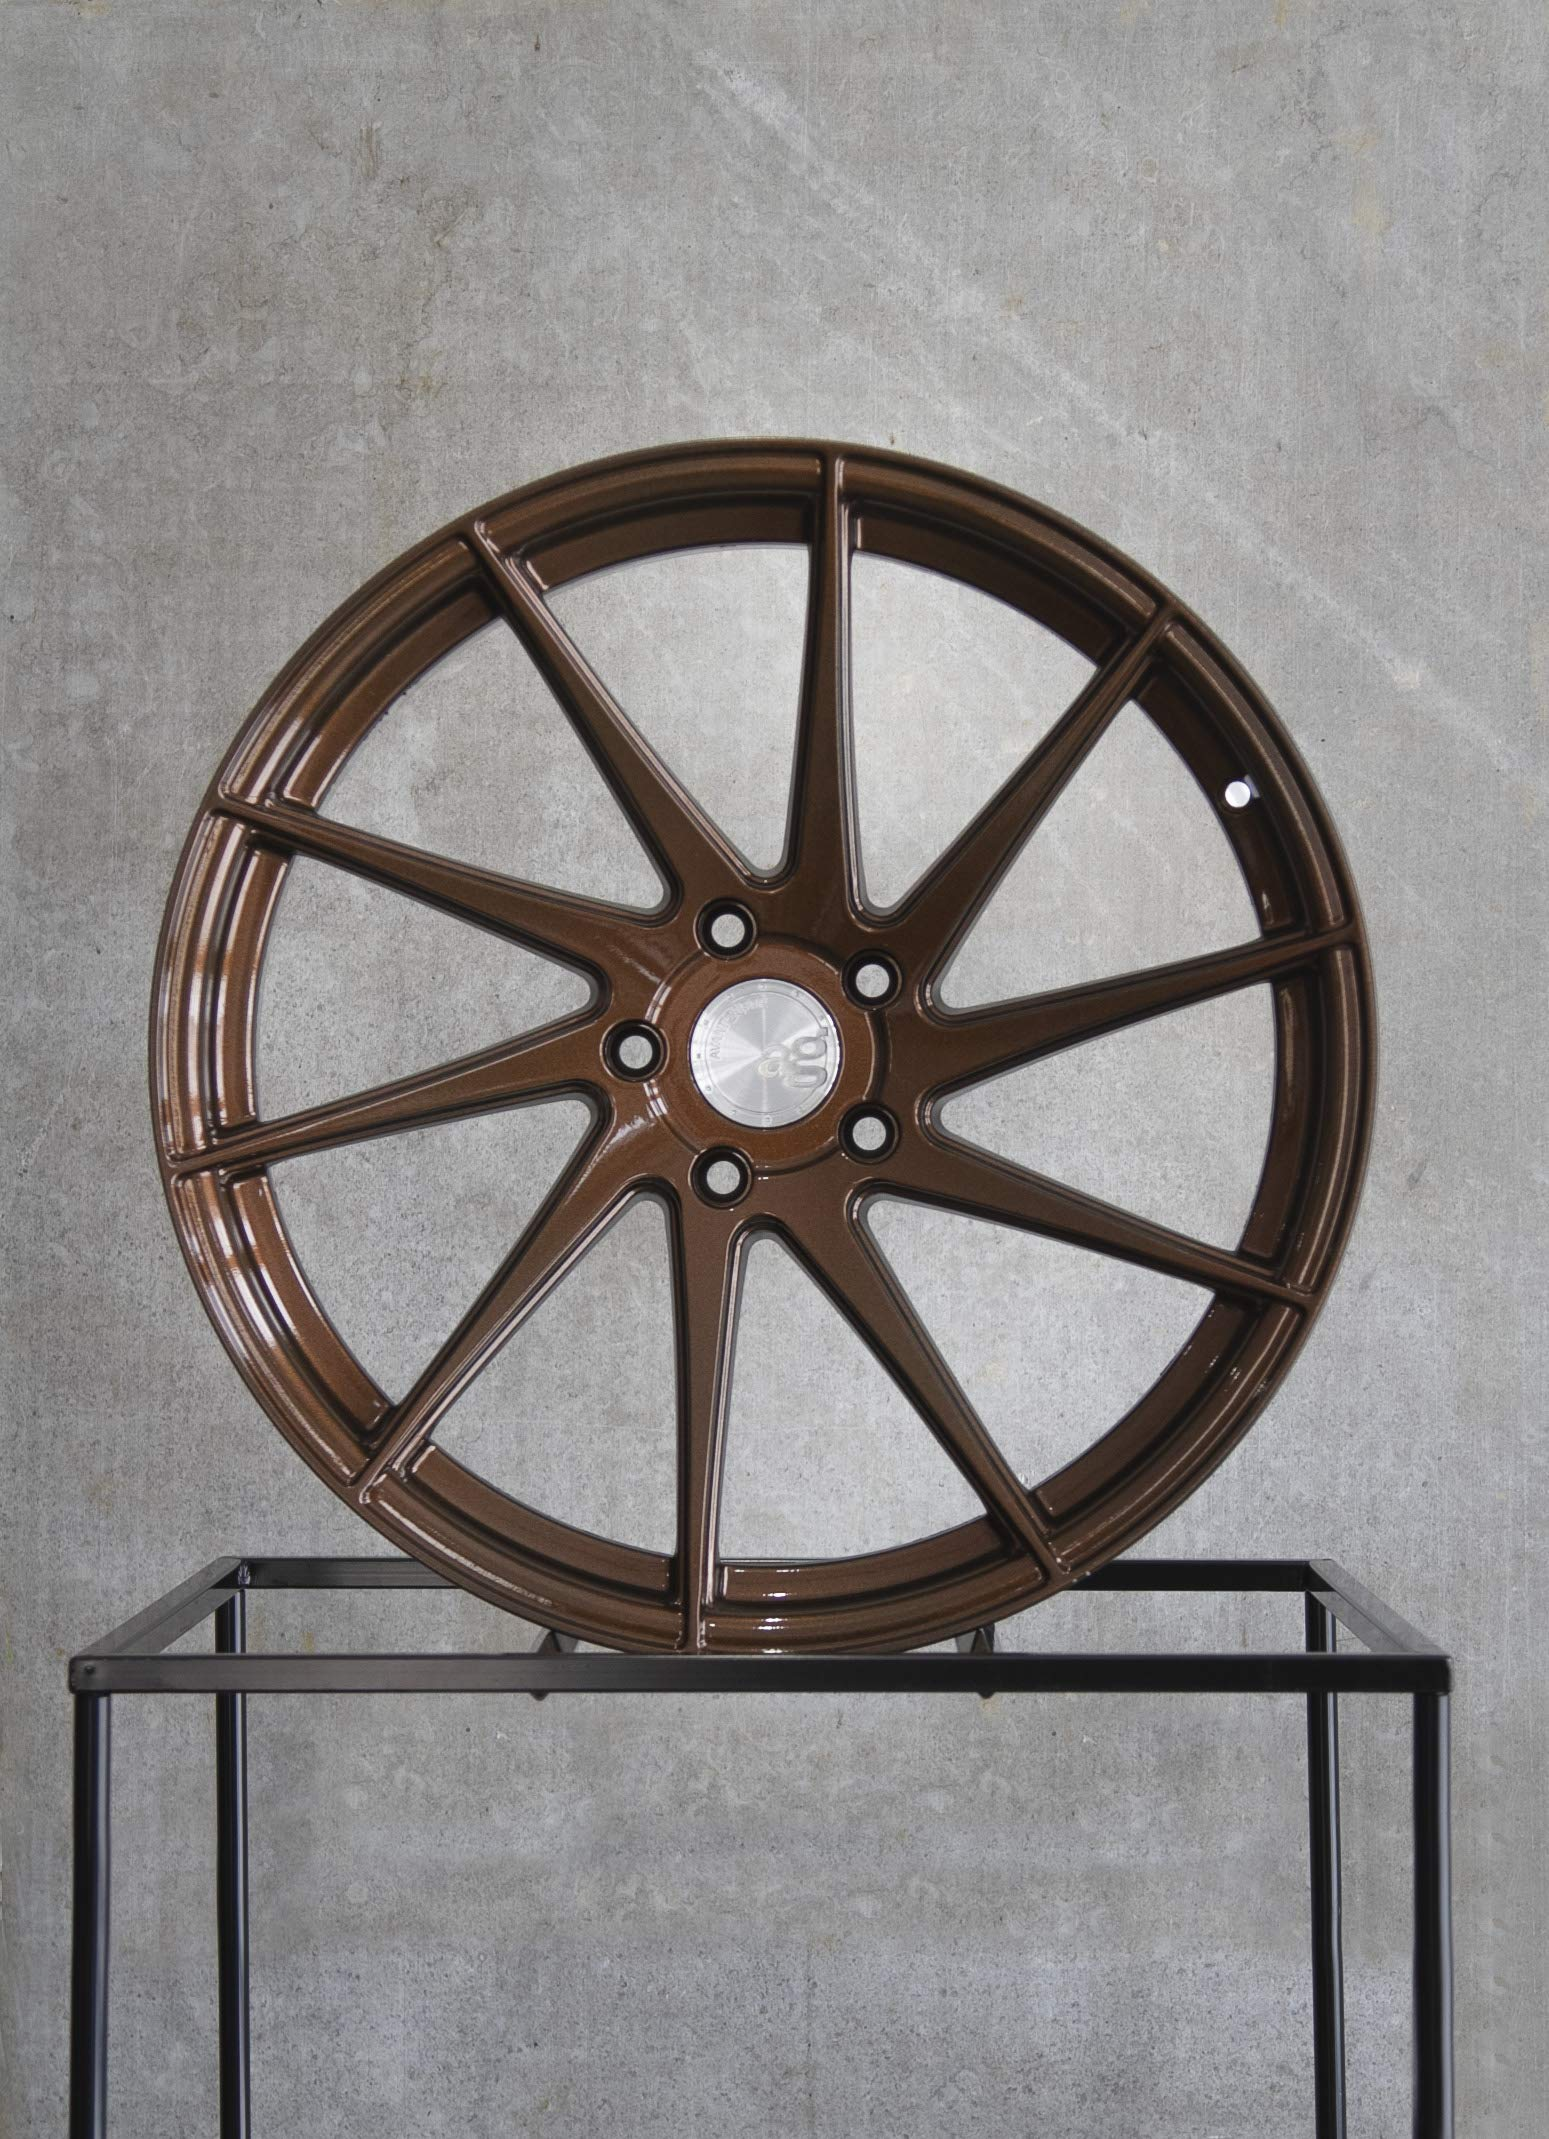 Superwrap Sprayable Vinyl Wrap - Wheels Kits 20'' to 22'' - Bronze by Superwrap (Image #2)